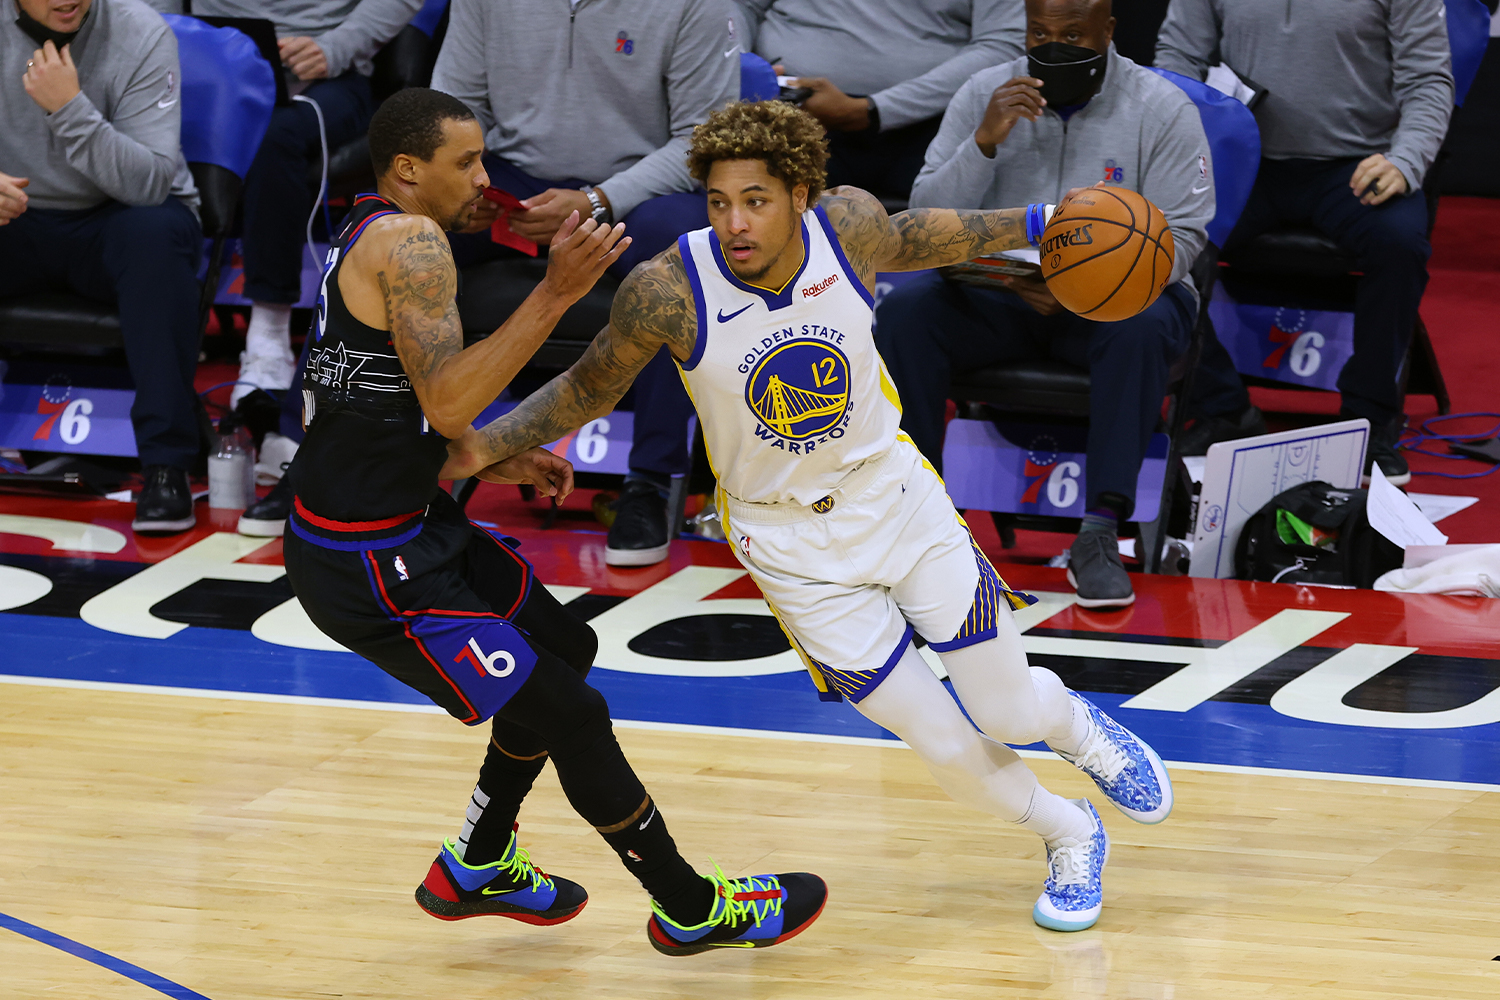 Kelly Oubre Jr. #12 of the Golden State Warriors in action against George Hill #33 the Philadelphia 76ers